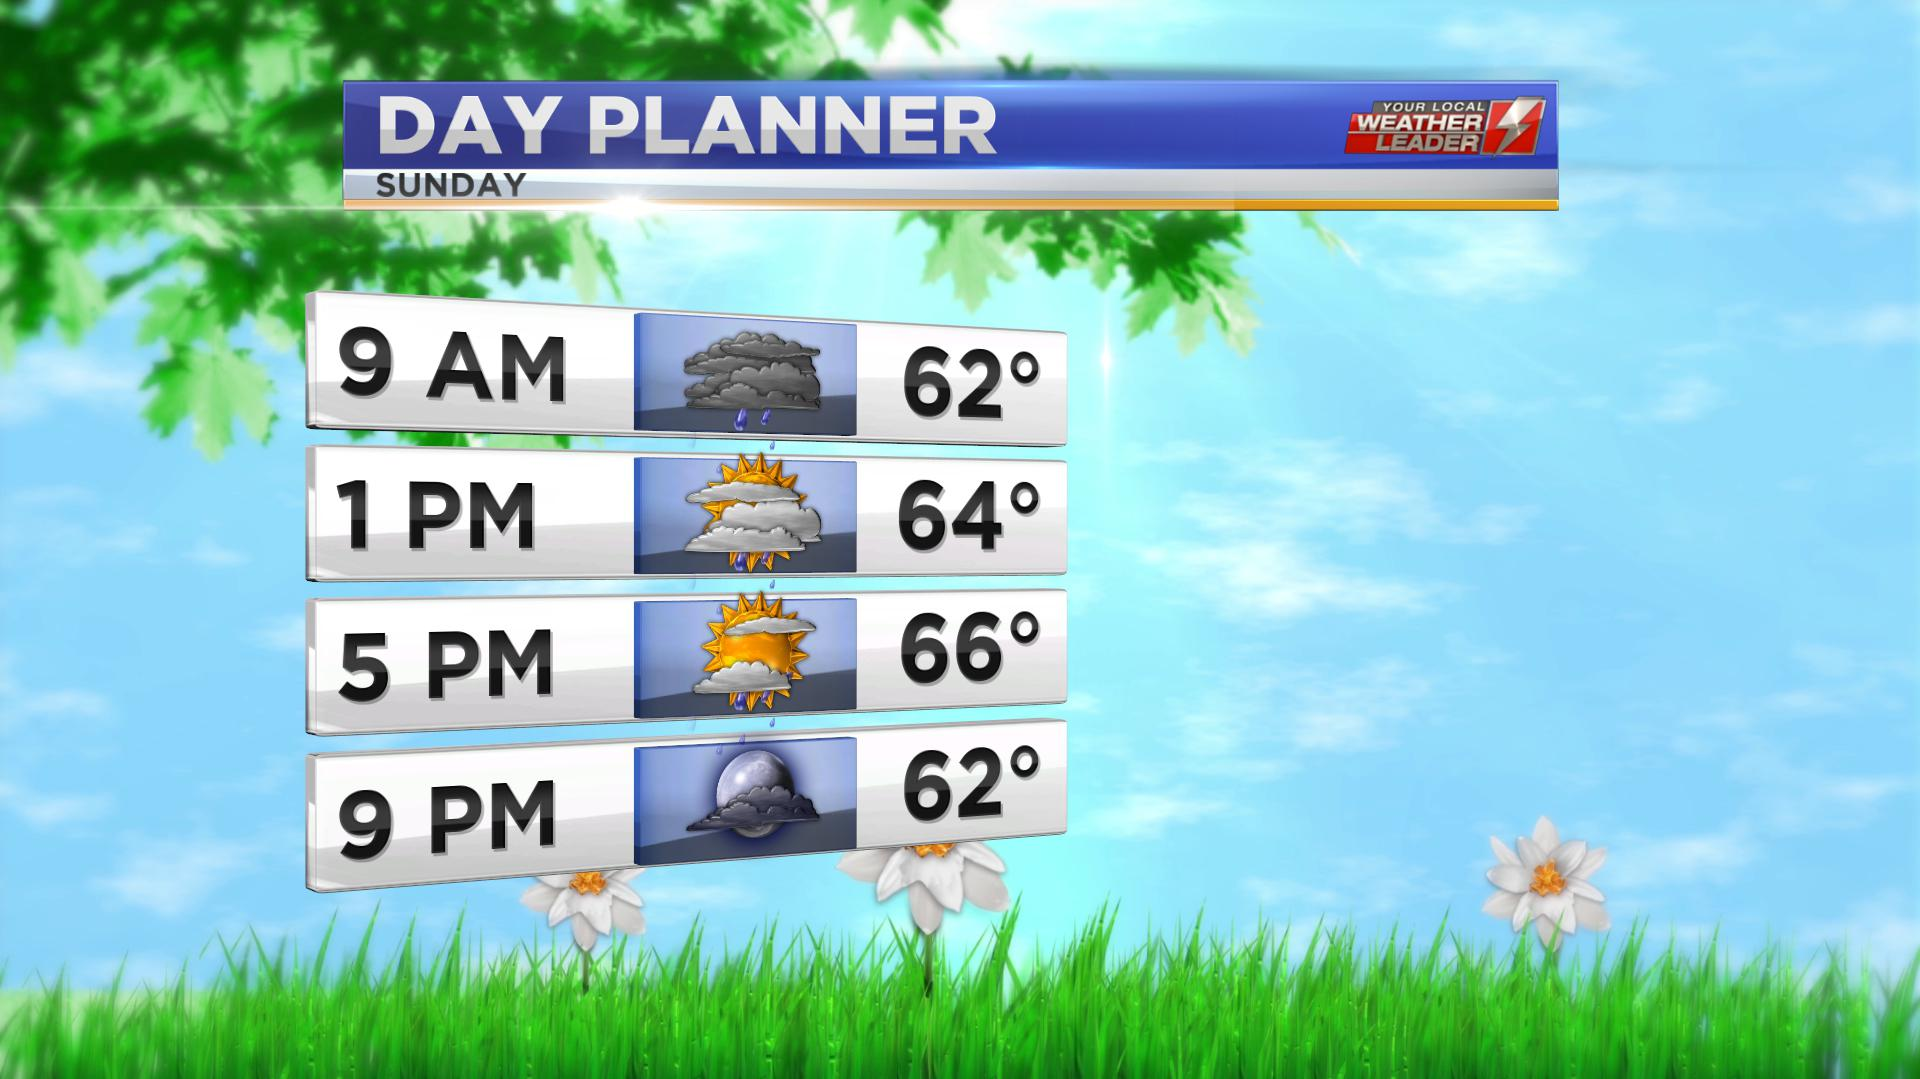 Day Planner Forecast for Sunday 05 May 2019